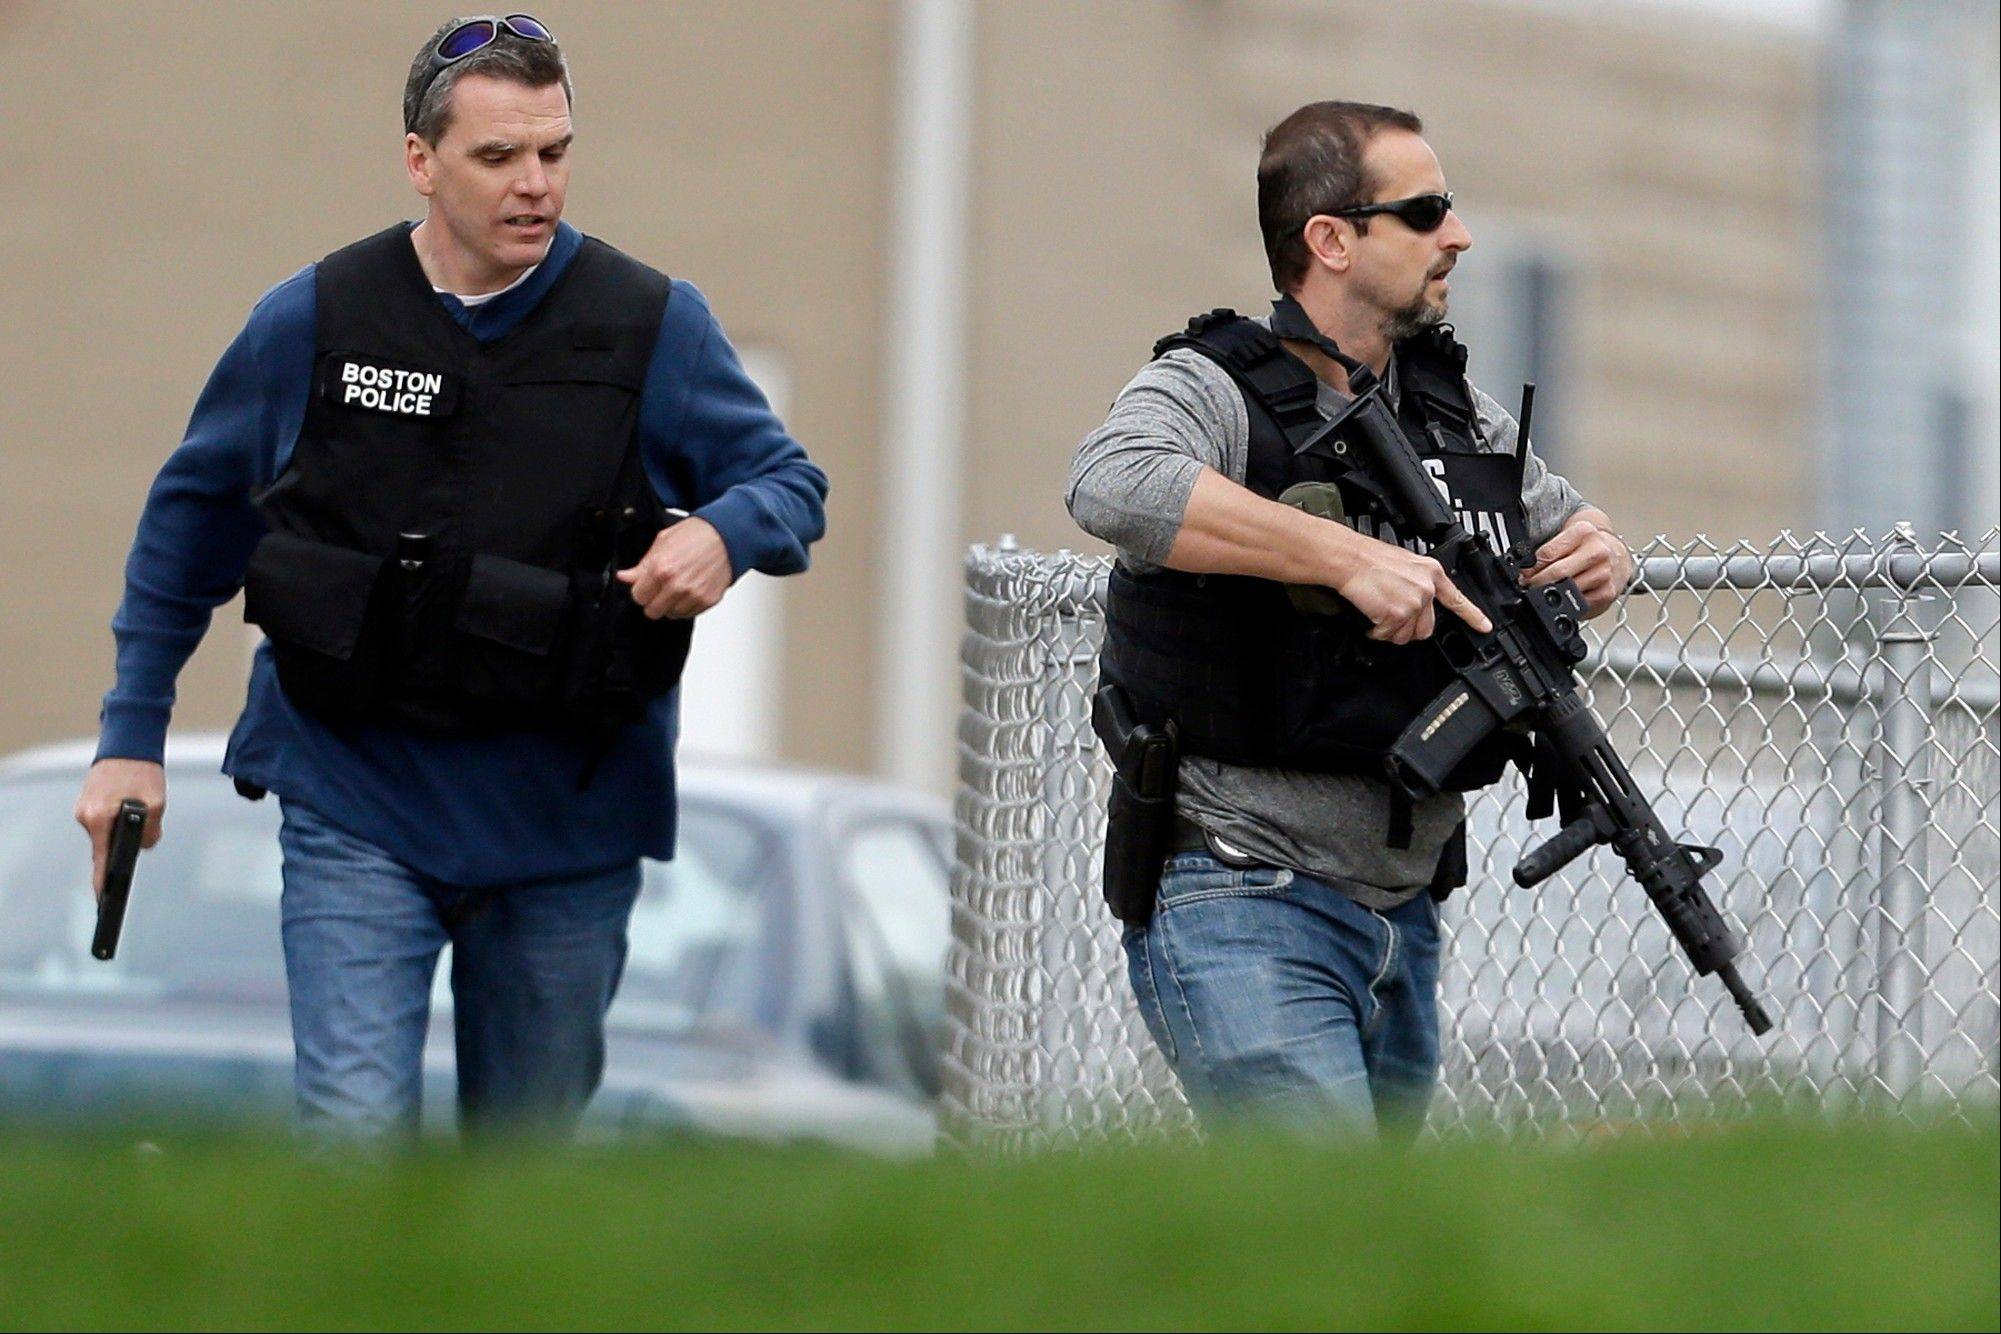 Police run with their weapons drawn as they conduct a search for a suspect in the Boston Marathon bombings, Friday, April 19, 2013, in Watertown, Mass. Two suspects in the Boston Marathon bombing killed an MIT police officer, injured a transit officer in a firefight and threw explosive devices at police during a getaway attempt in a long night of violence that left one of them dead and another still at large Friday, authorities said as the manhunt intensified for a young man described as a dangerous terrorist.